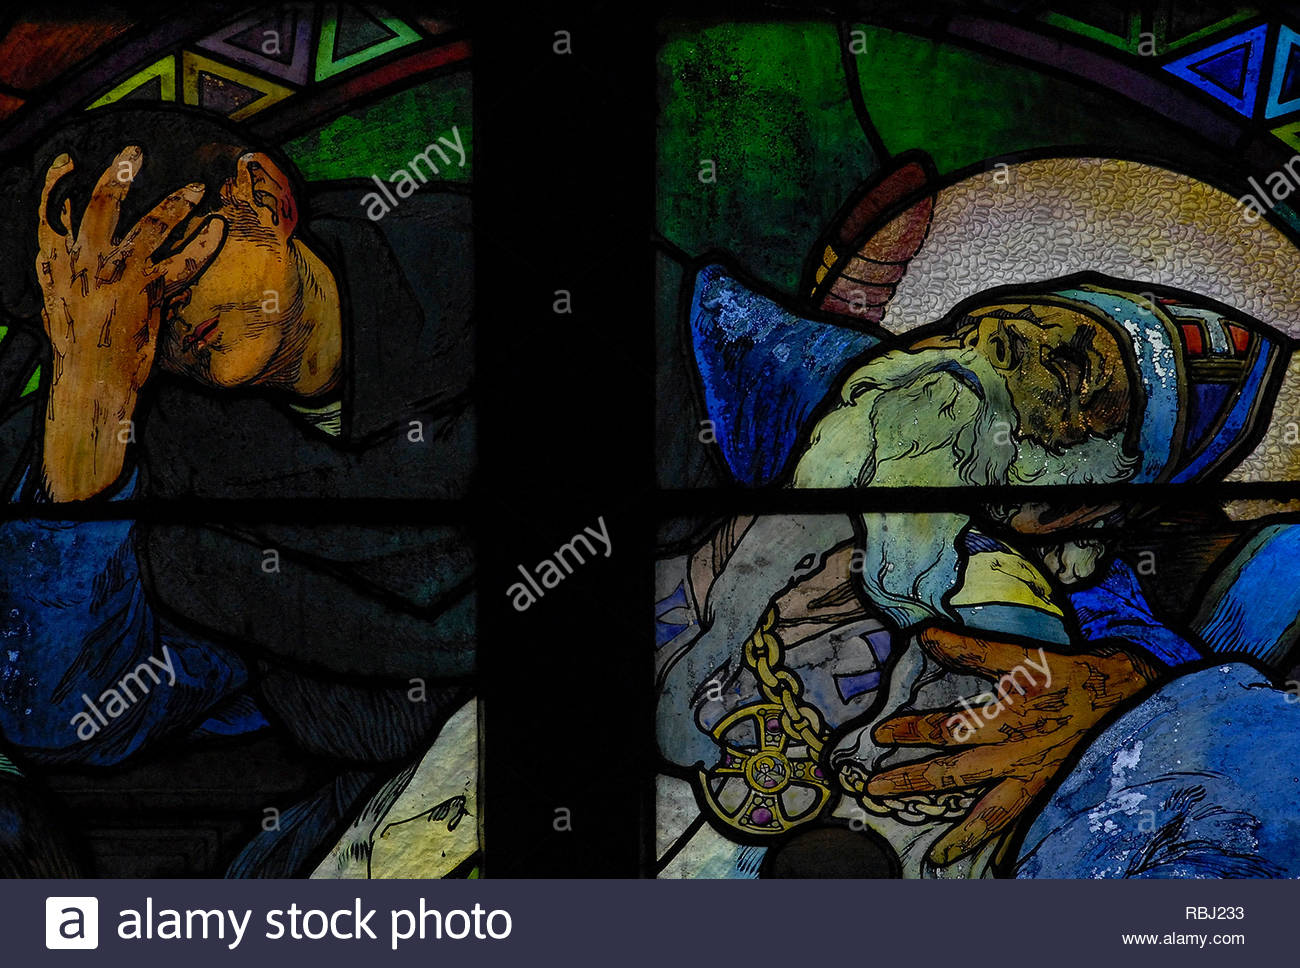 Prague, Czech Republic: death of St Methodius - detail, Alfons Mucha 1931 Art Nouveau cathedral glass on 'Apostles to the Slavs' SS Cyril & Methodius. - Stock Image